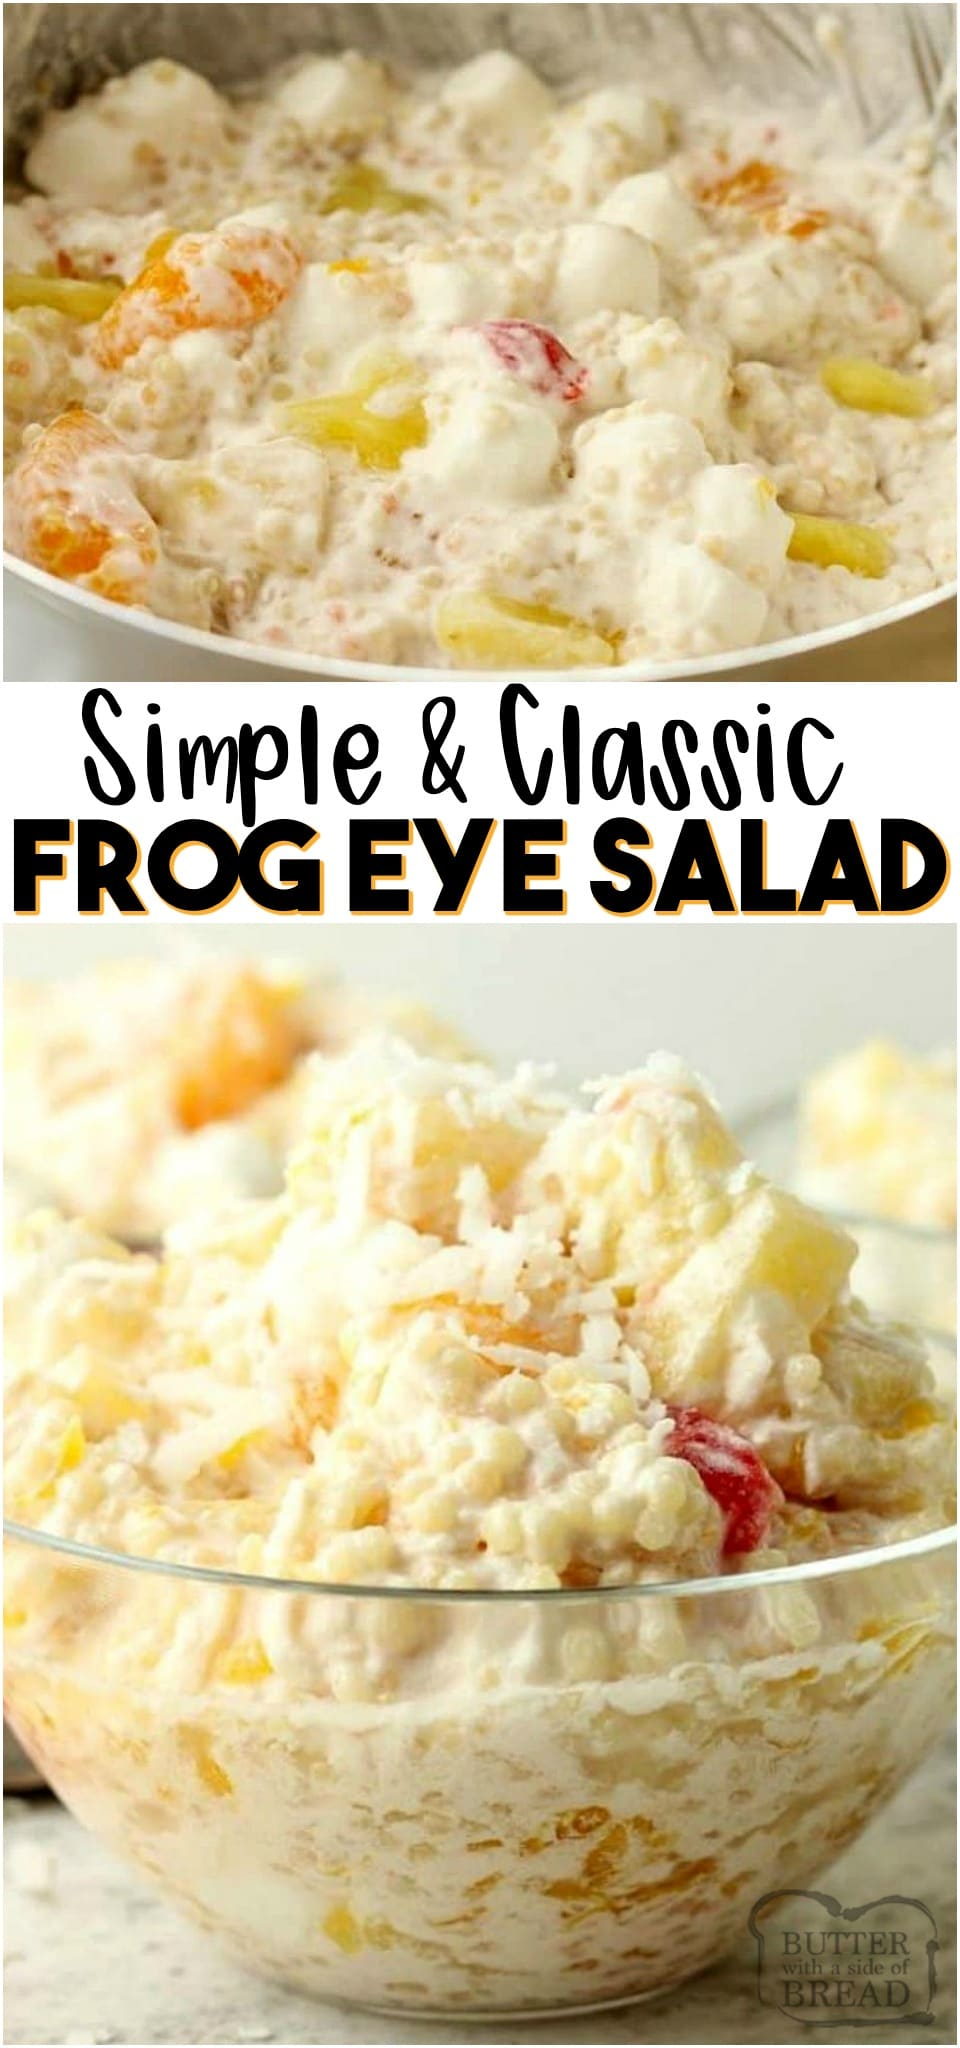 Frog Eye Salad is a classic pot luck recipe. This delicious sweet fruit salad has tiny pasta, mandarin oranges, pineapple, whipped topping, marshmallows, coconut and sweet cherries.